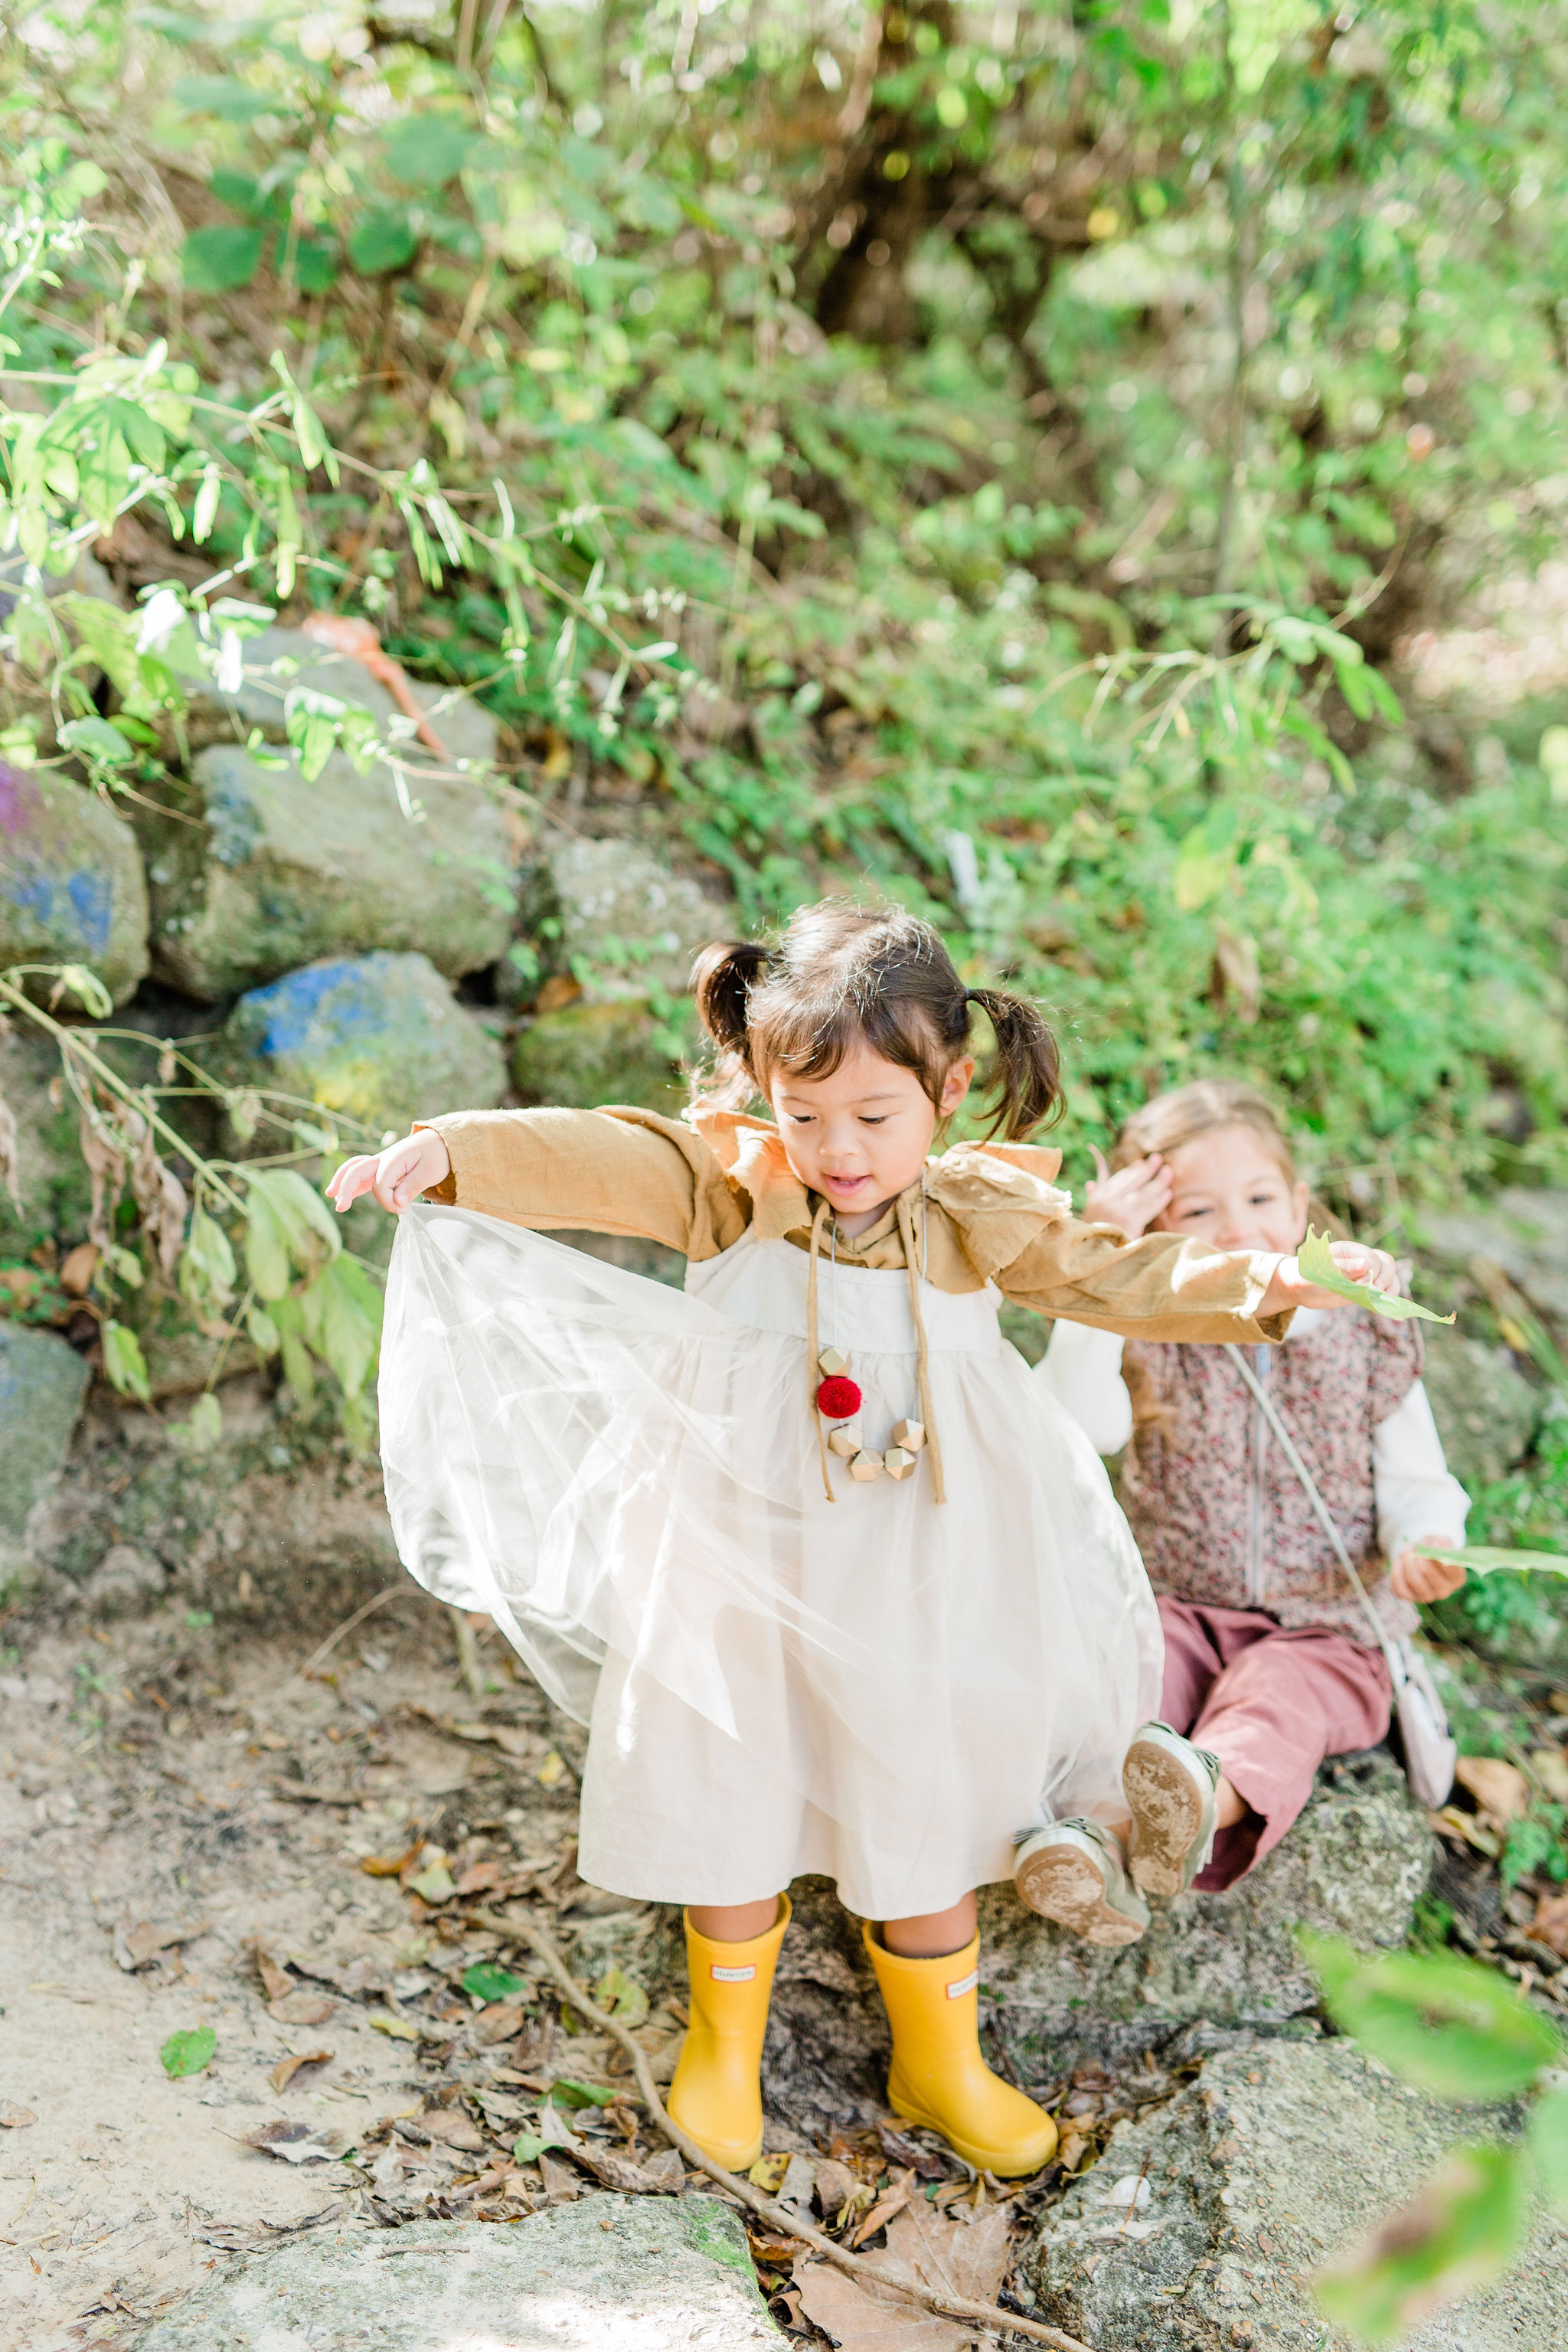 Best Modern Kids Clothing Finds of 2019 Choulala Blast Box Review